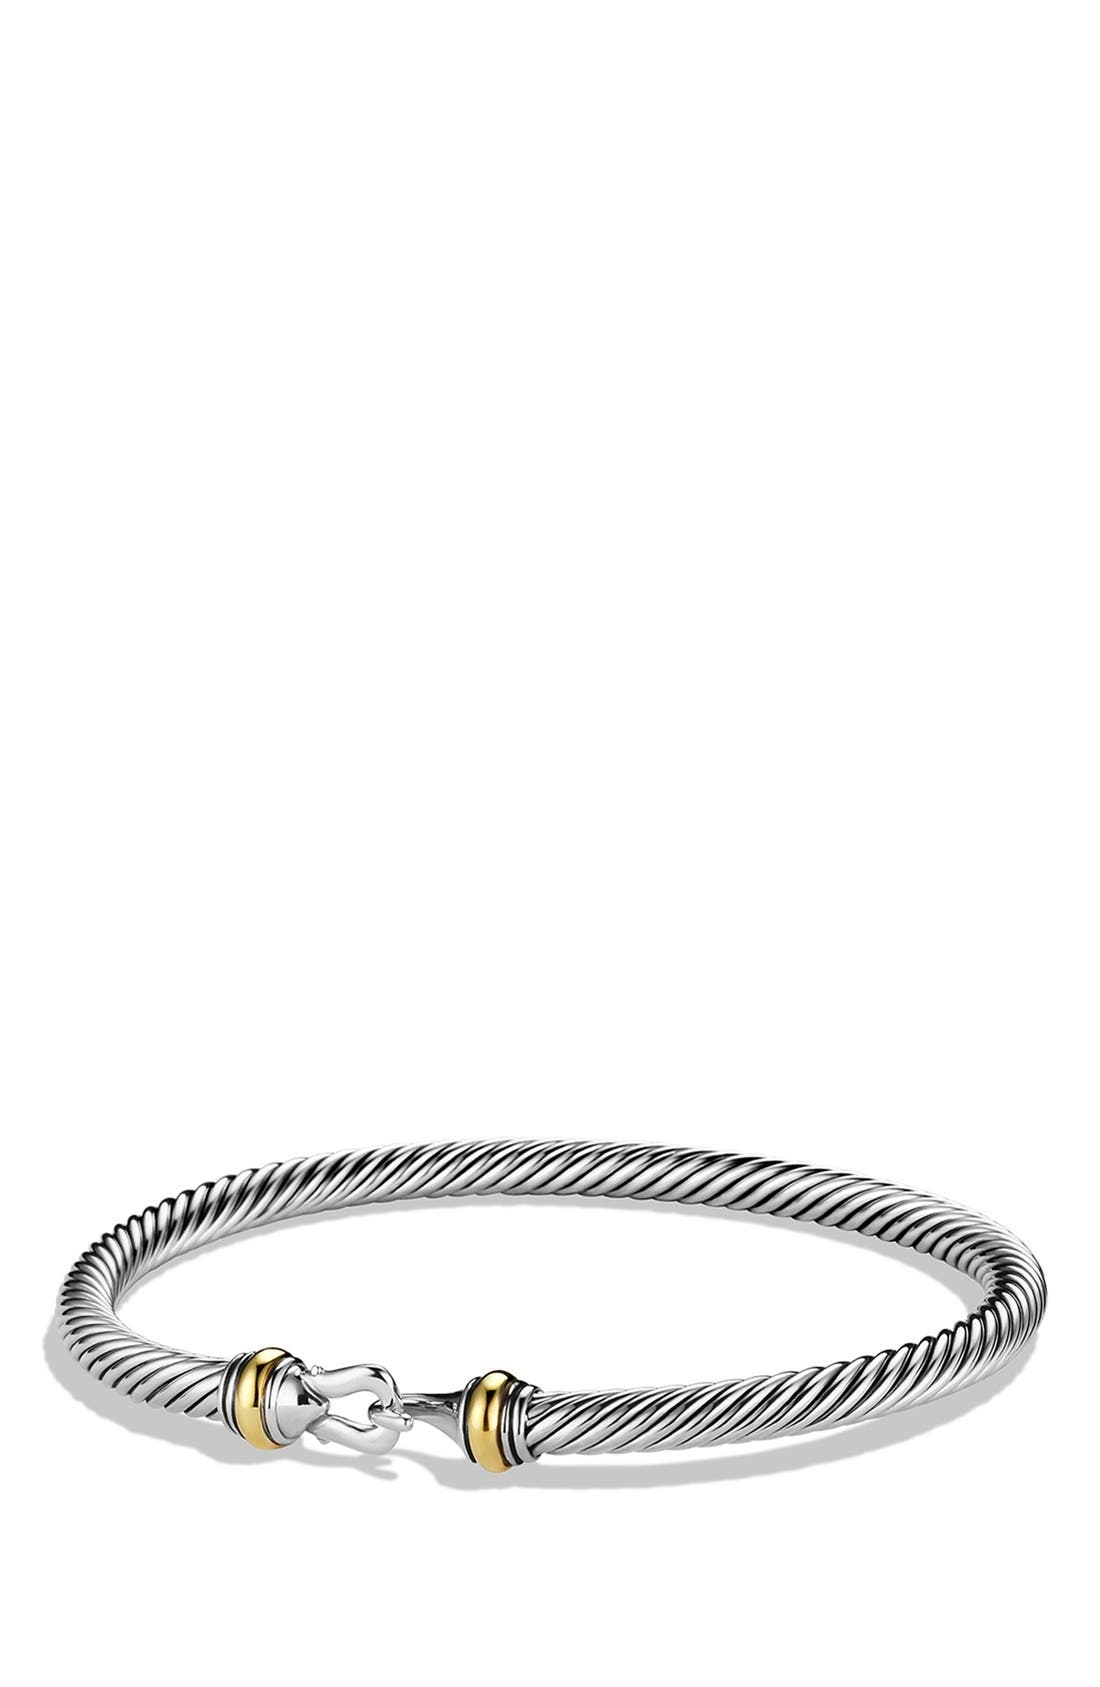 Cable Buckle Bracelet with Gold, 4mm,                         Main,                         color, Two Tone